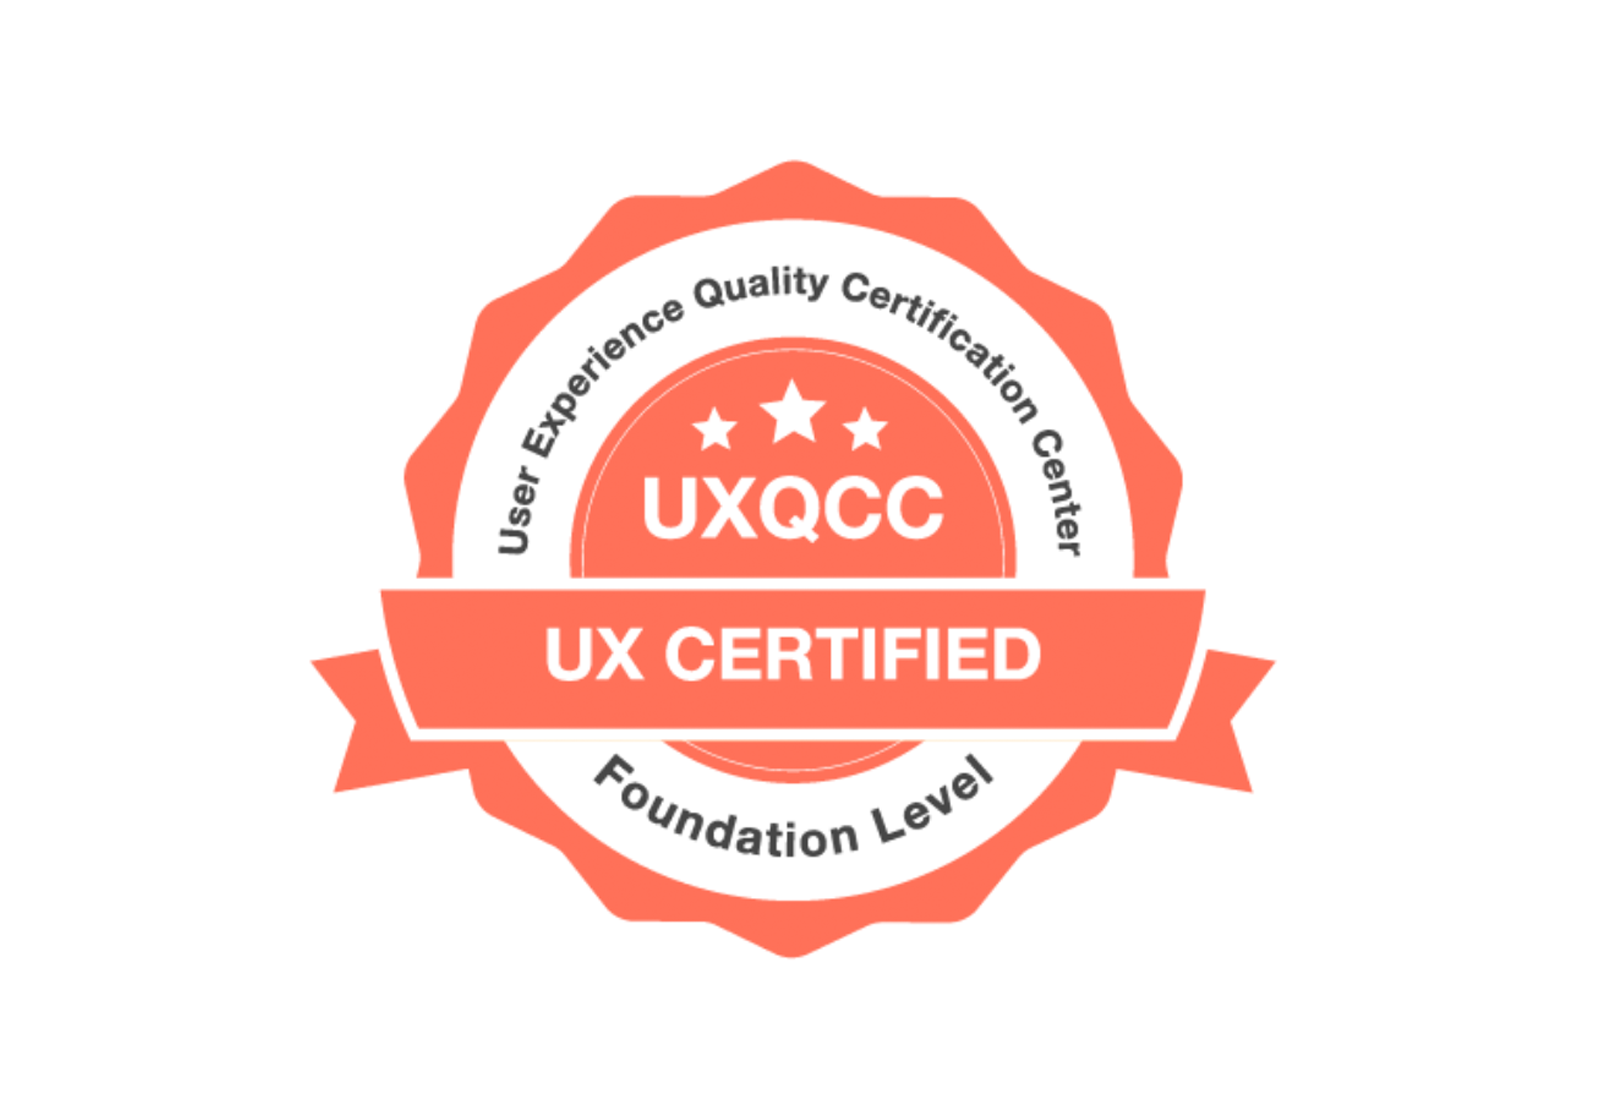 UXQCC-CPUE-CERTIFIED-AcademyOfUX copy